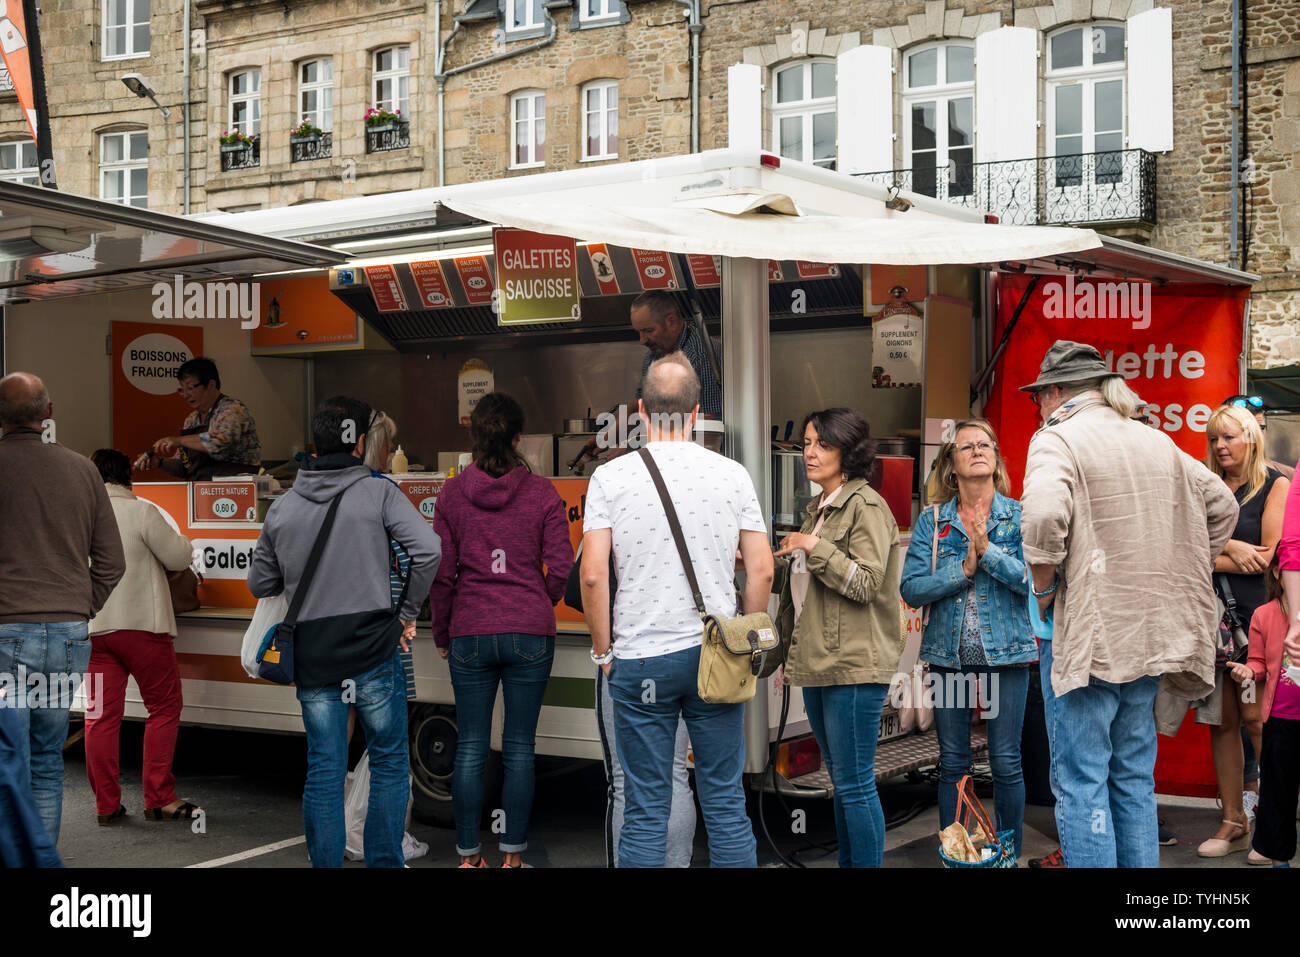 People queueing for galette saucisse (grilled sausage wrapped in crepe)  in the Thursday weekly Market in Dinan, Brittany, France Stock Photo